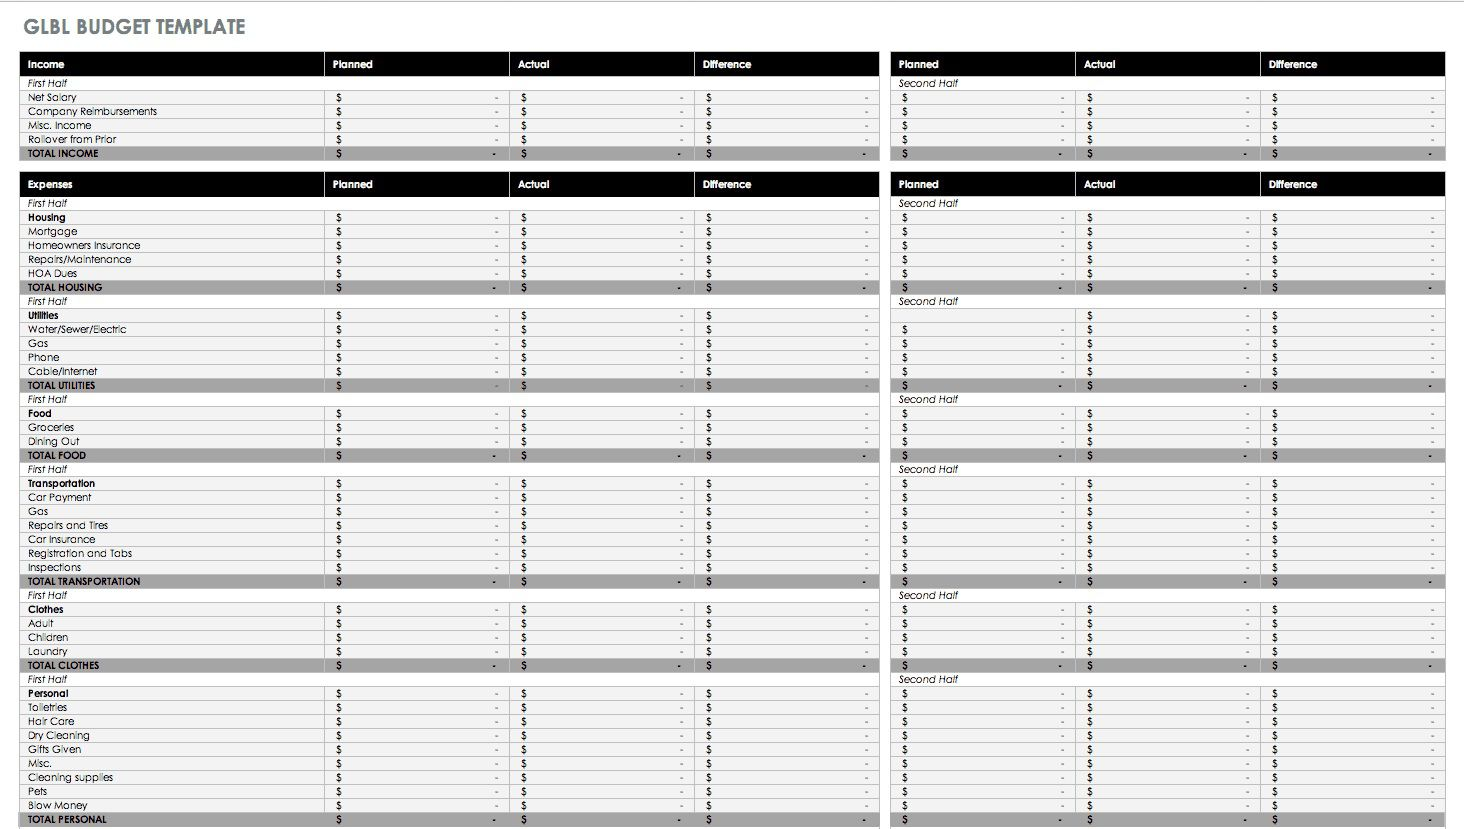 007 Unforgettable Blank Monthly Budget Sheet High Resolution  Sheets Free Printable Editable Template Personal WorksheetFull